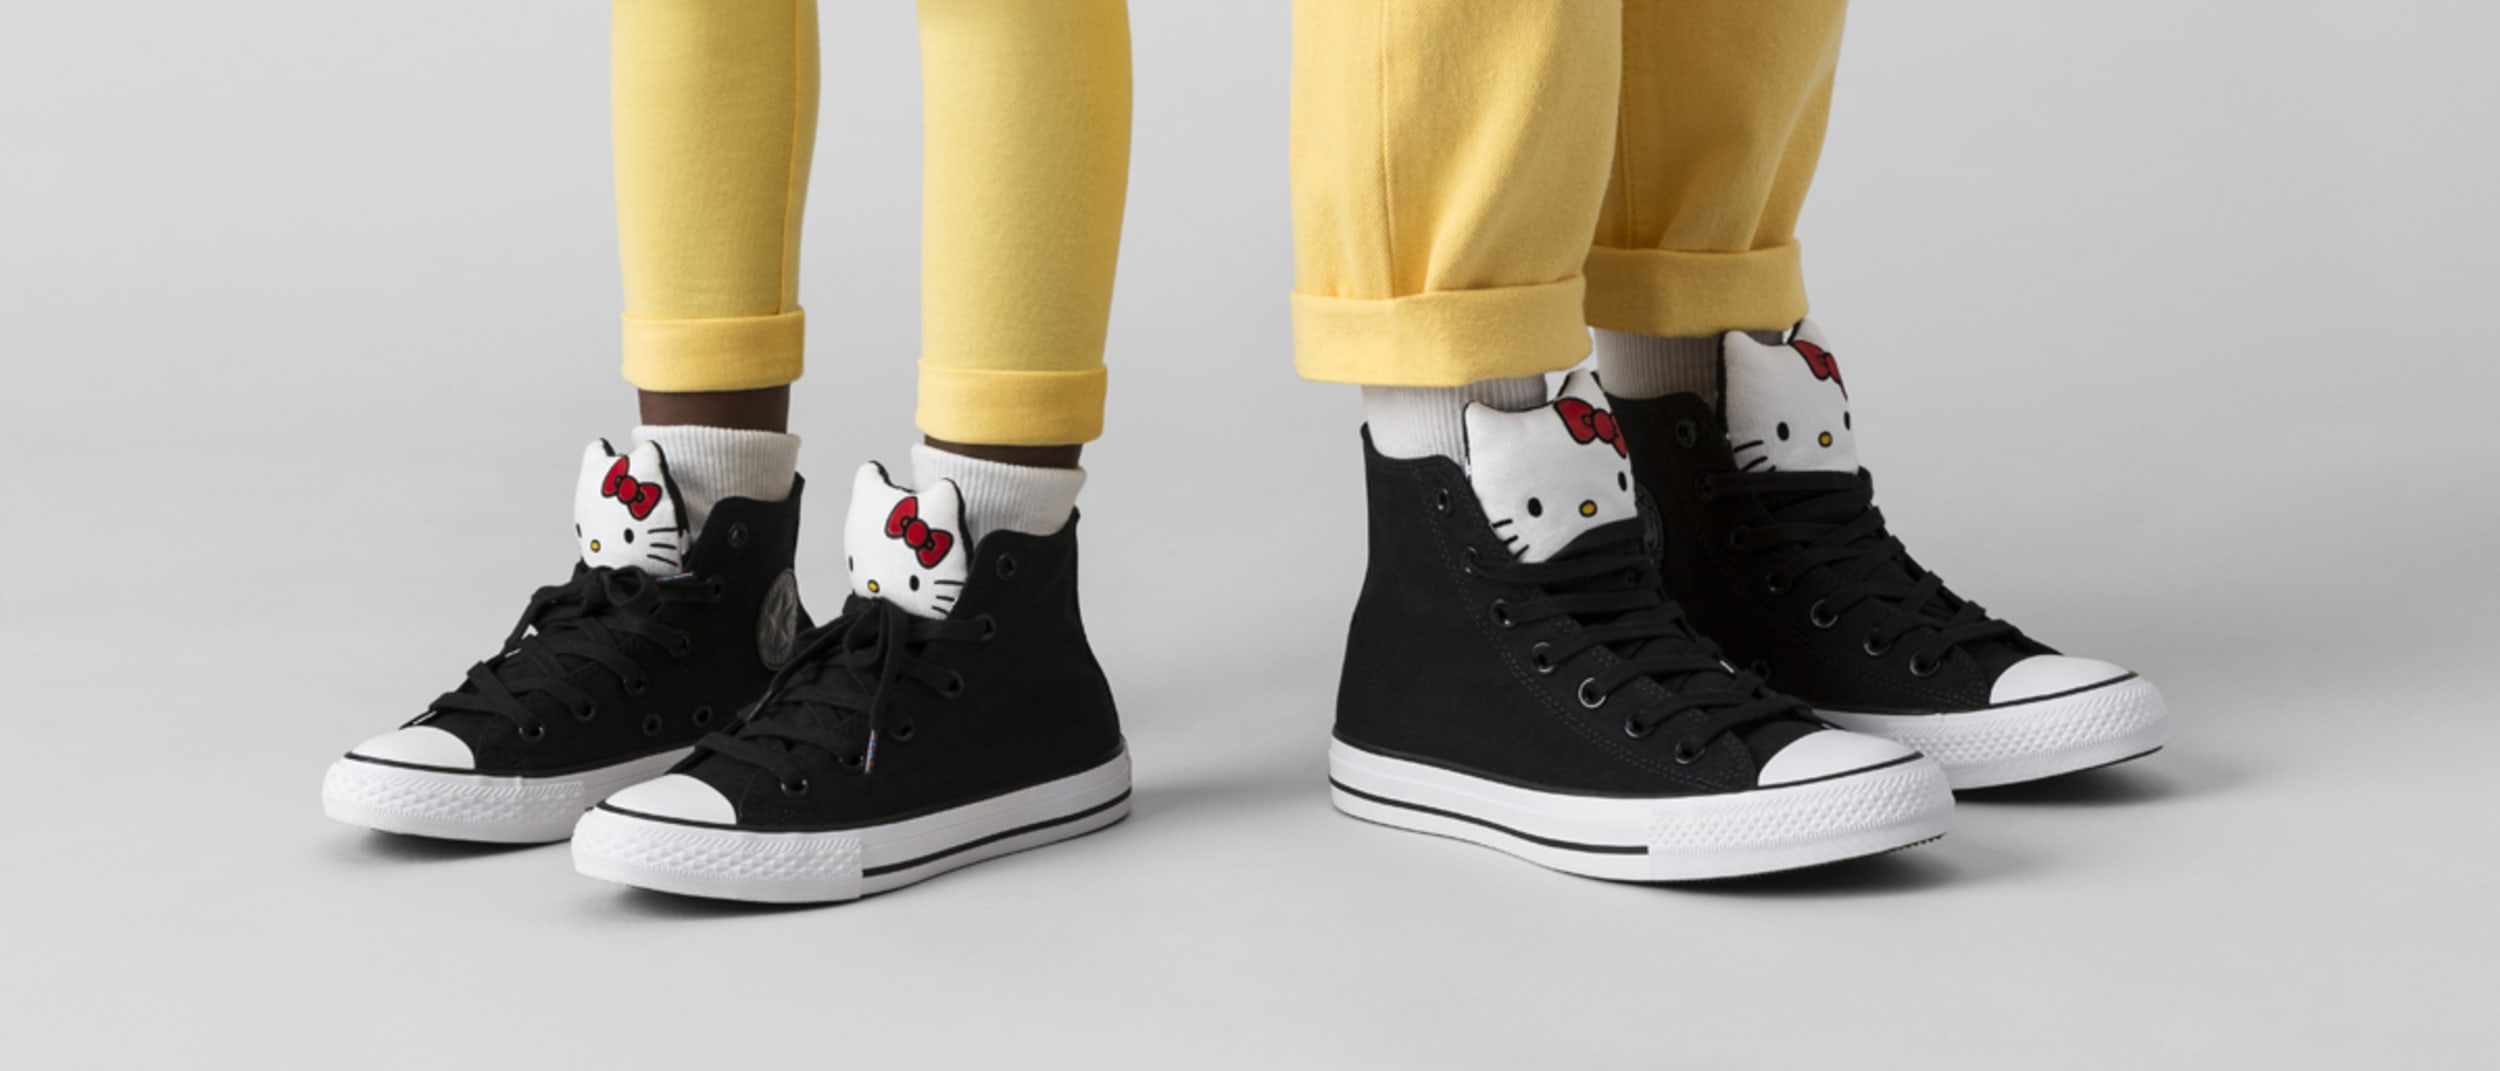 Converse x Hello Kitty Returns To Complete Your Holiday Wardrobe